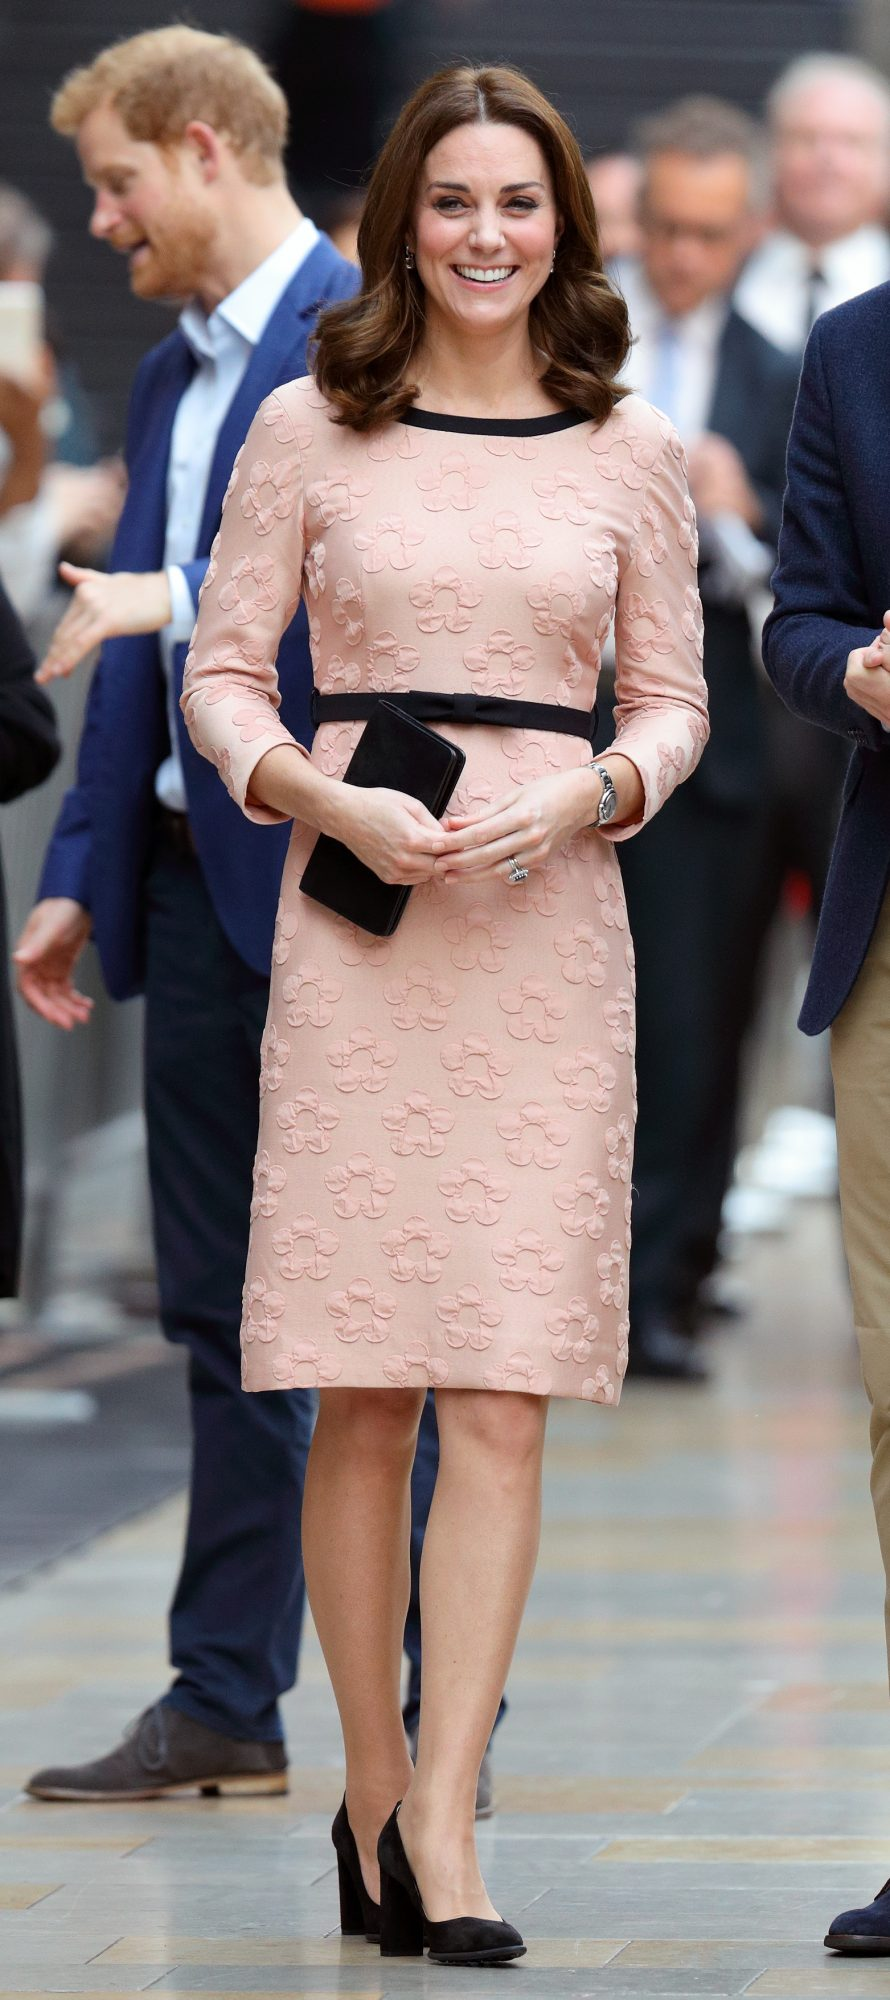 kate middleton s best fall looks 12 photos to inspire your post labor day style people com kate middleton s best fall looks 12